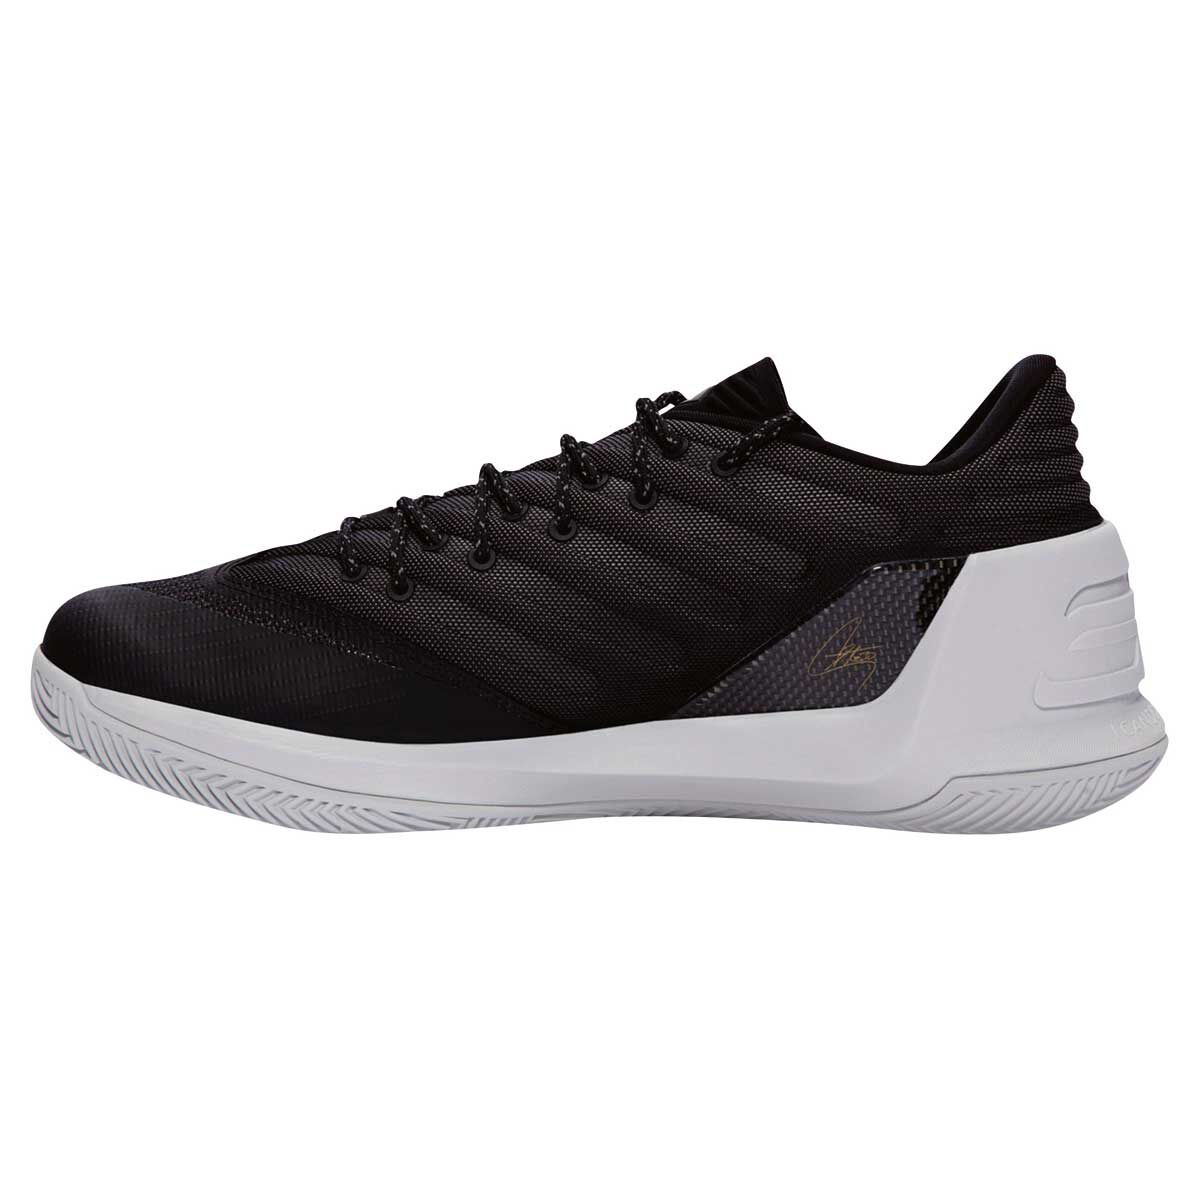 62edc9587ac ... spain under armour curry 3 low mens basketball shoes black grey us 7  black 3beb2 00971